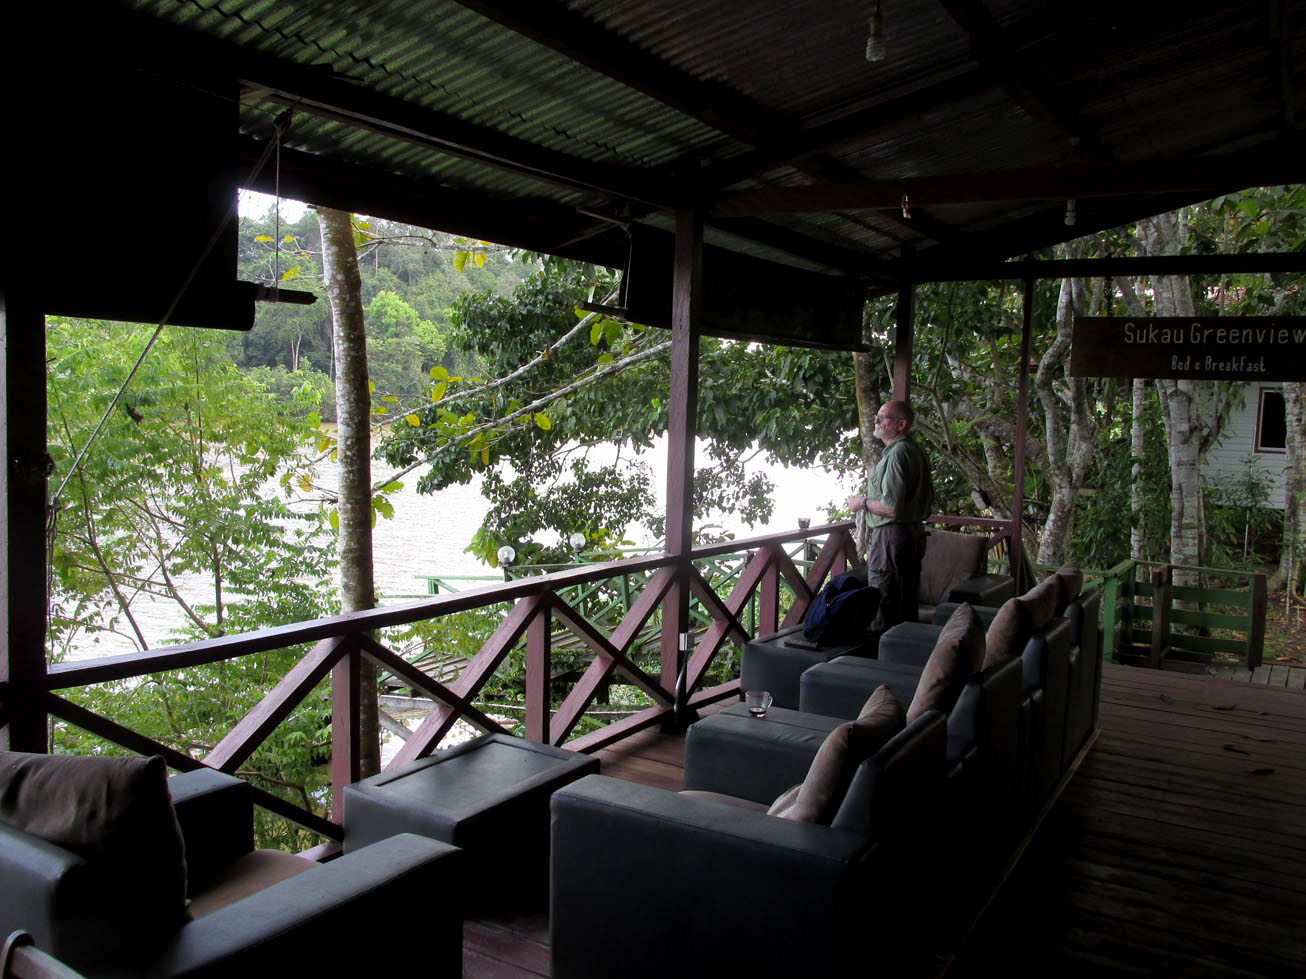 Our Hotel in Sukau Greenview Bed & Breakfast